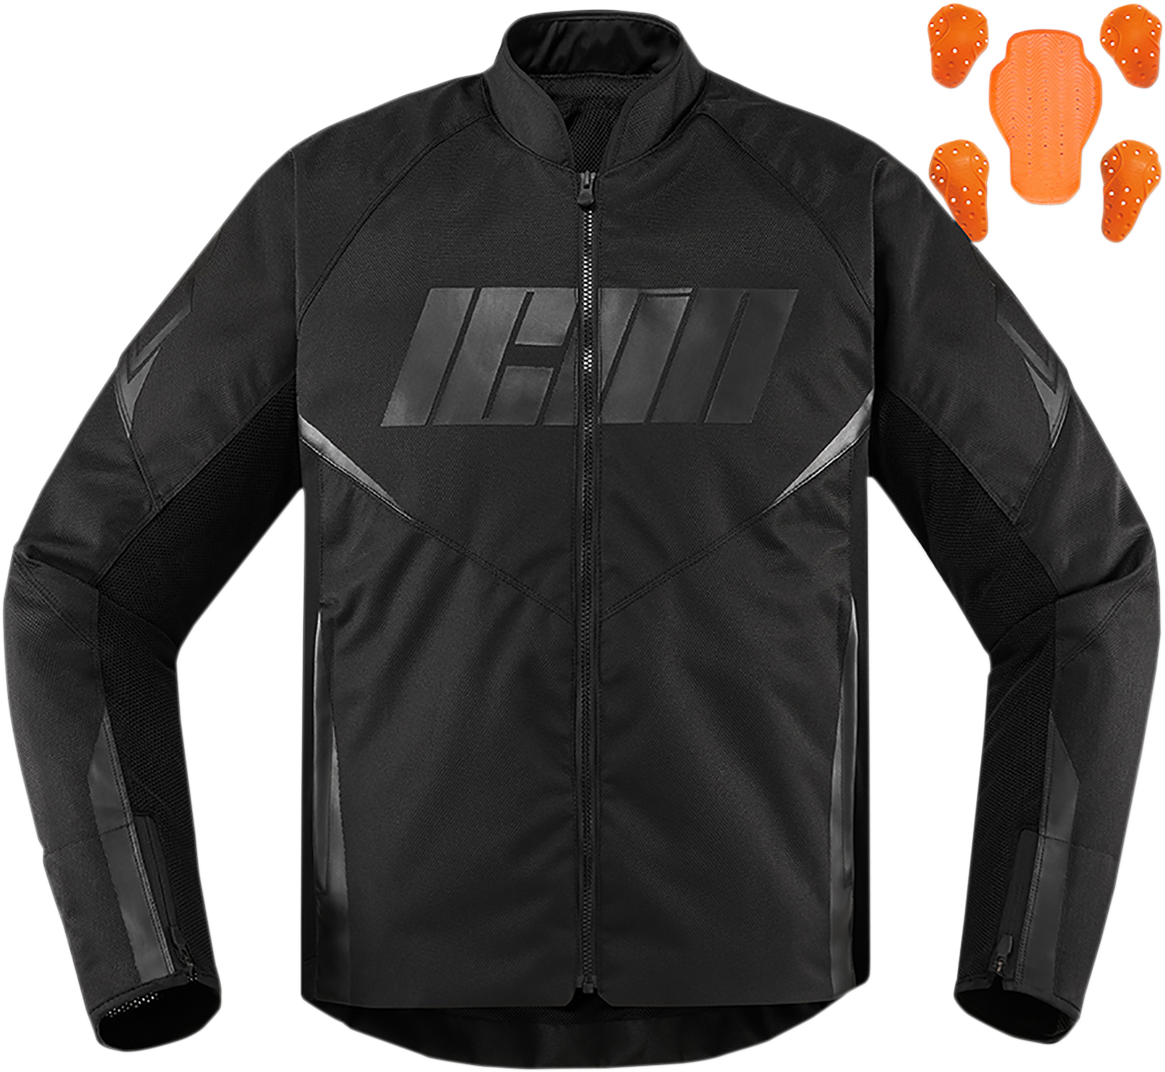 Icon Hooligan Adult Mens Motorcycle Riding Street Racing D30 CE Armored Jacket